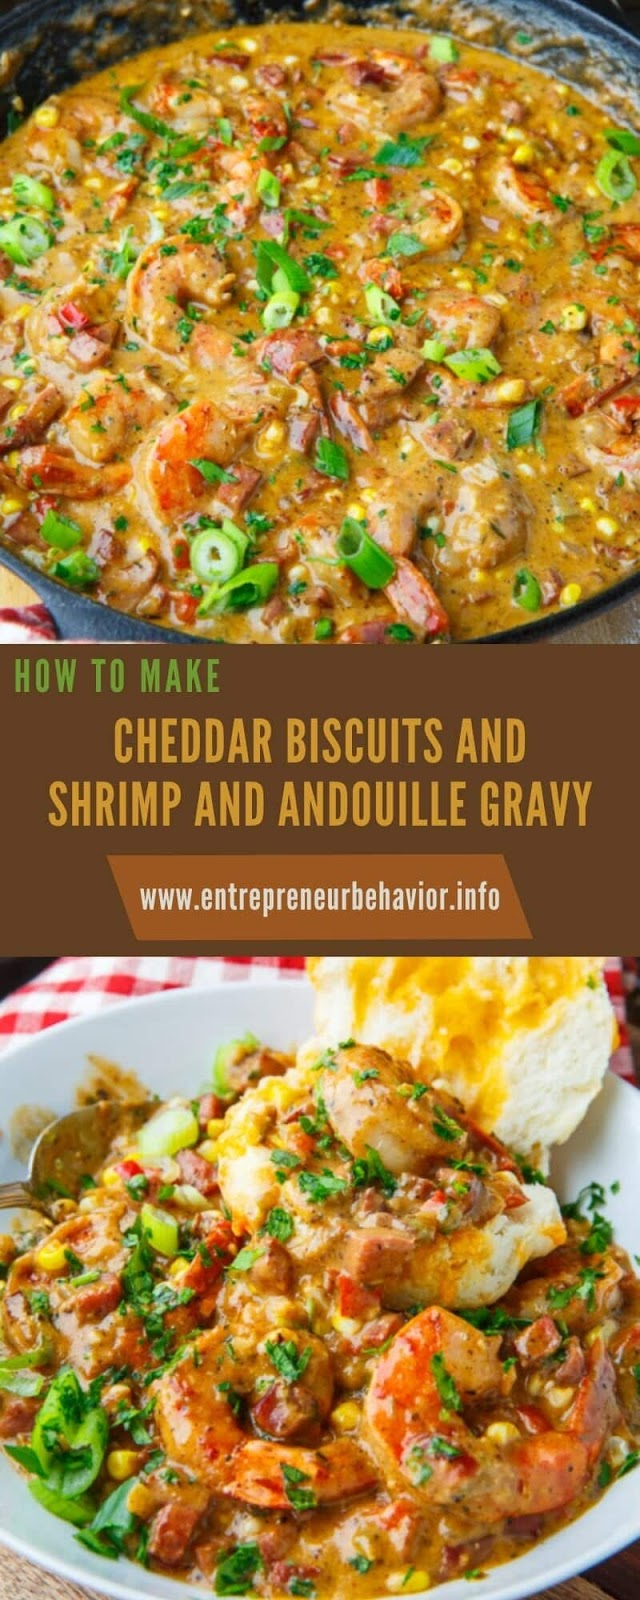 CHEDDAR BISCUITS AND SHRIMP AND ANDOUILLE GRAVY